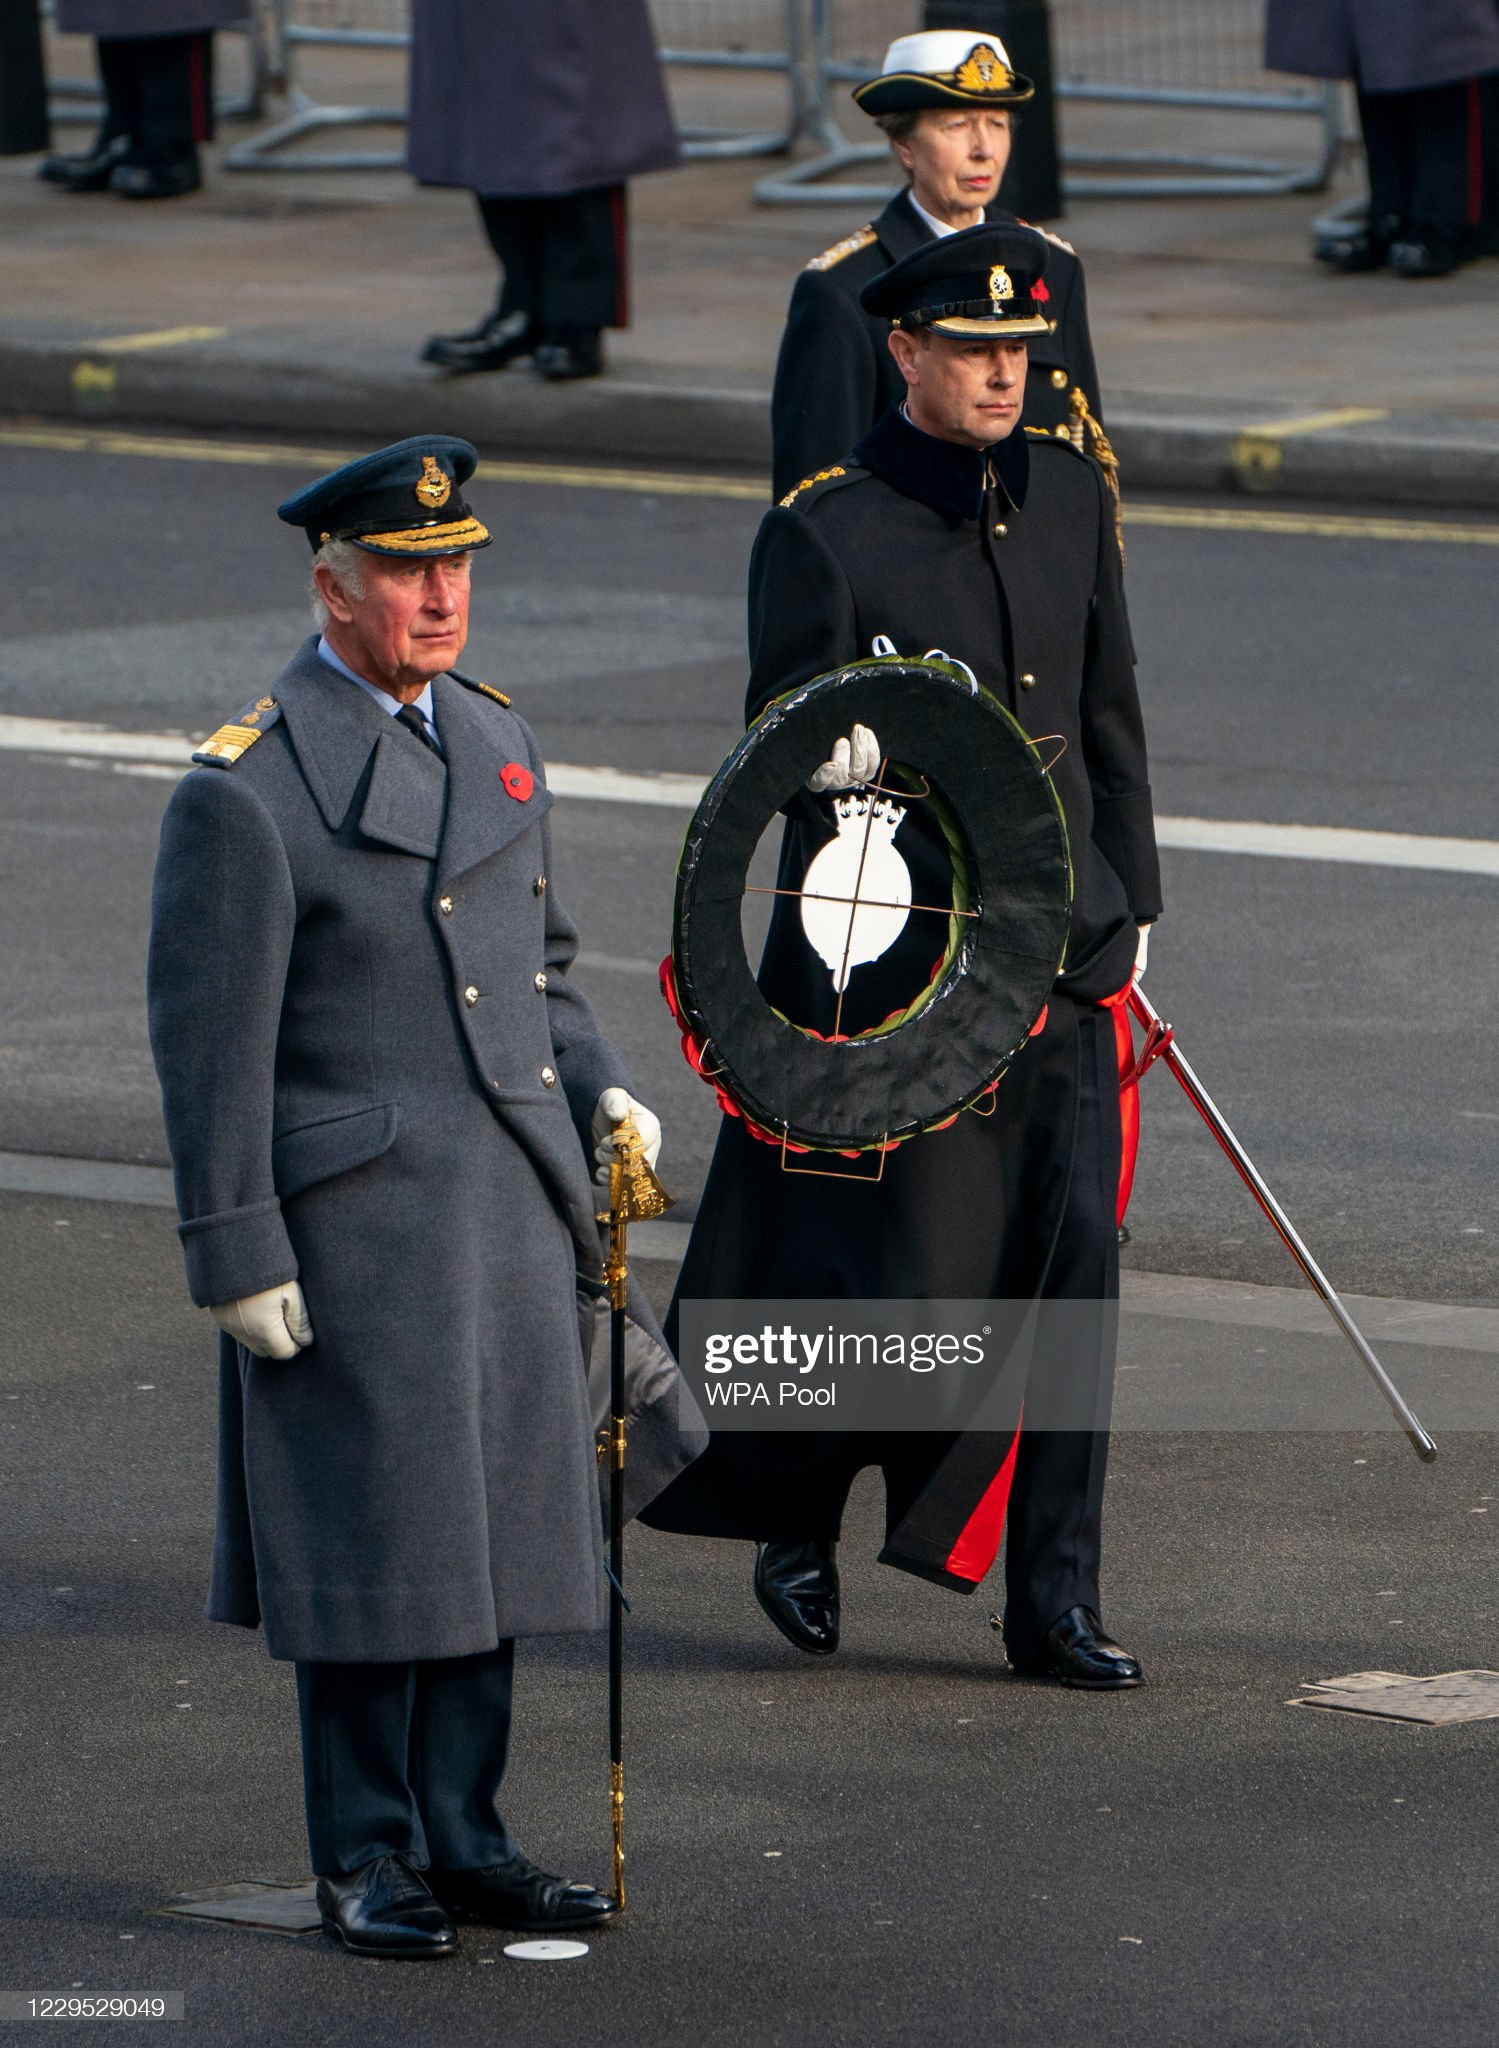 https://media.gettyimages.com/photos/britains-prince-charles-prince-of-wales-attends-the-national-service-picture-id1229529049?s=2048x2048